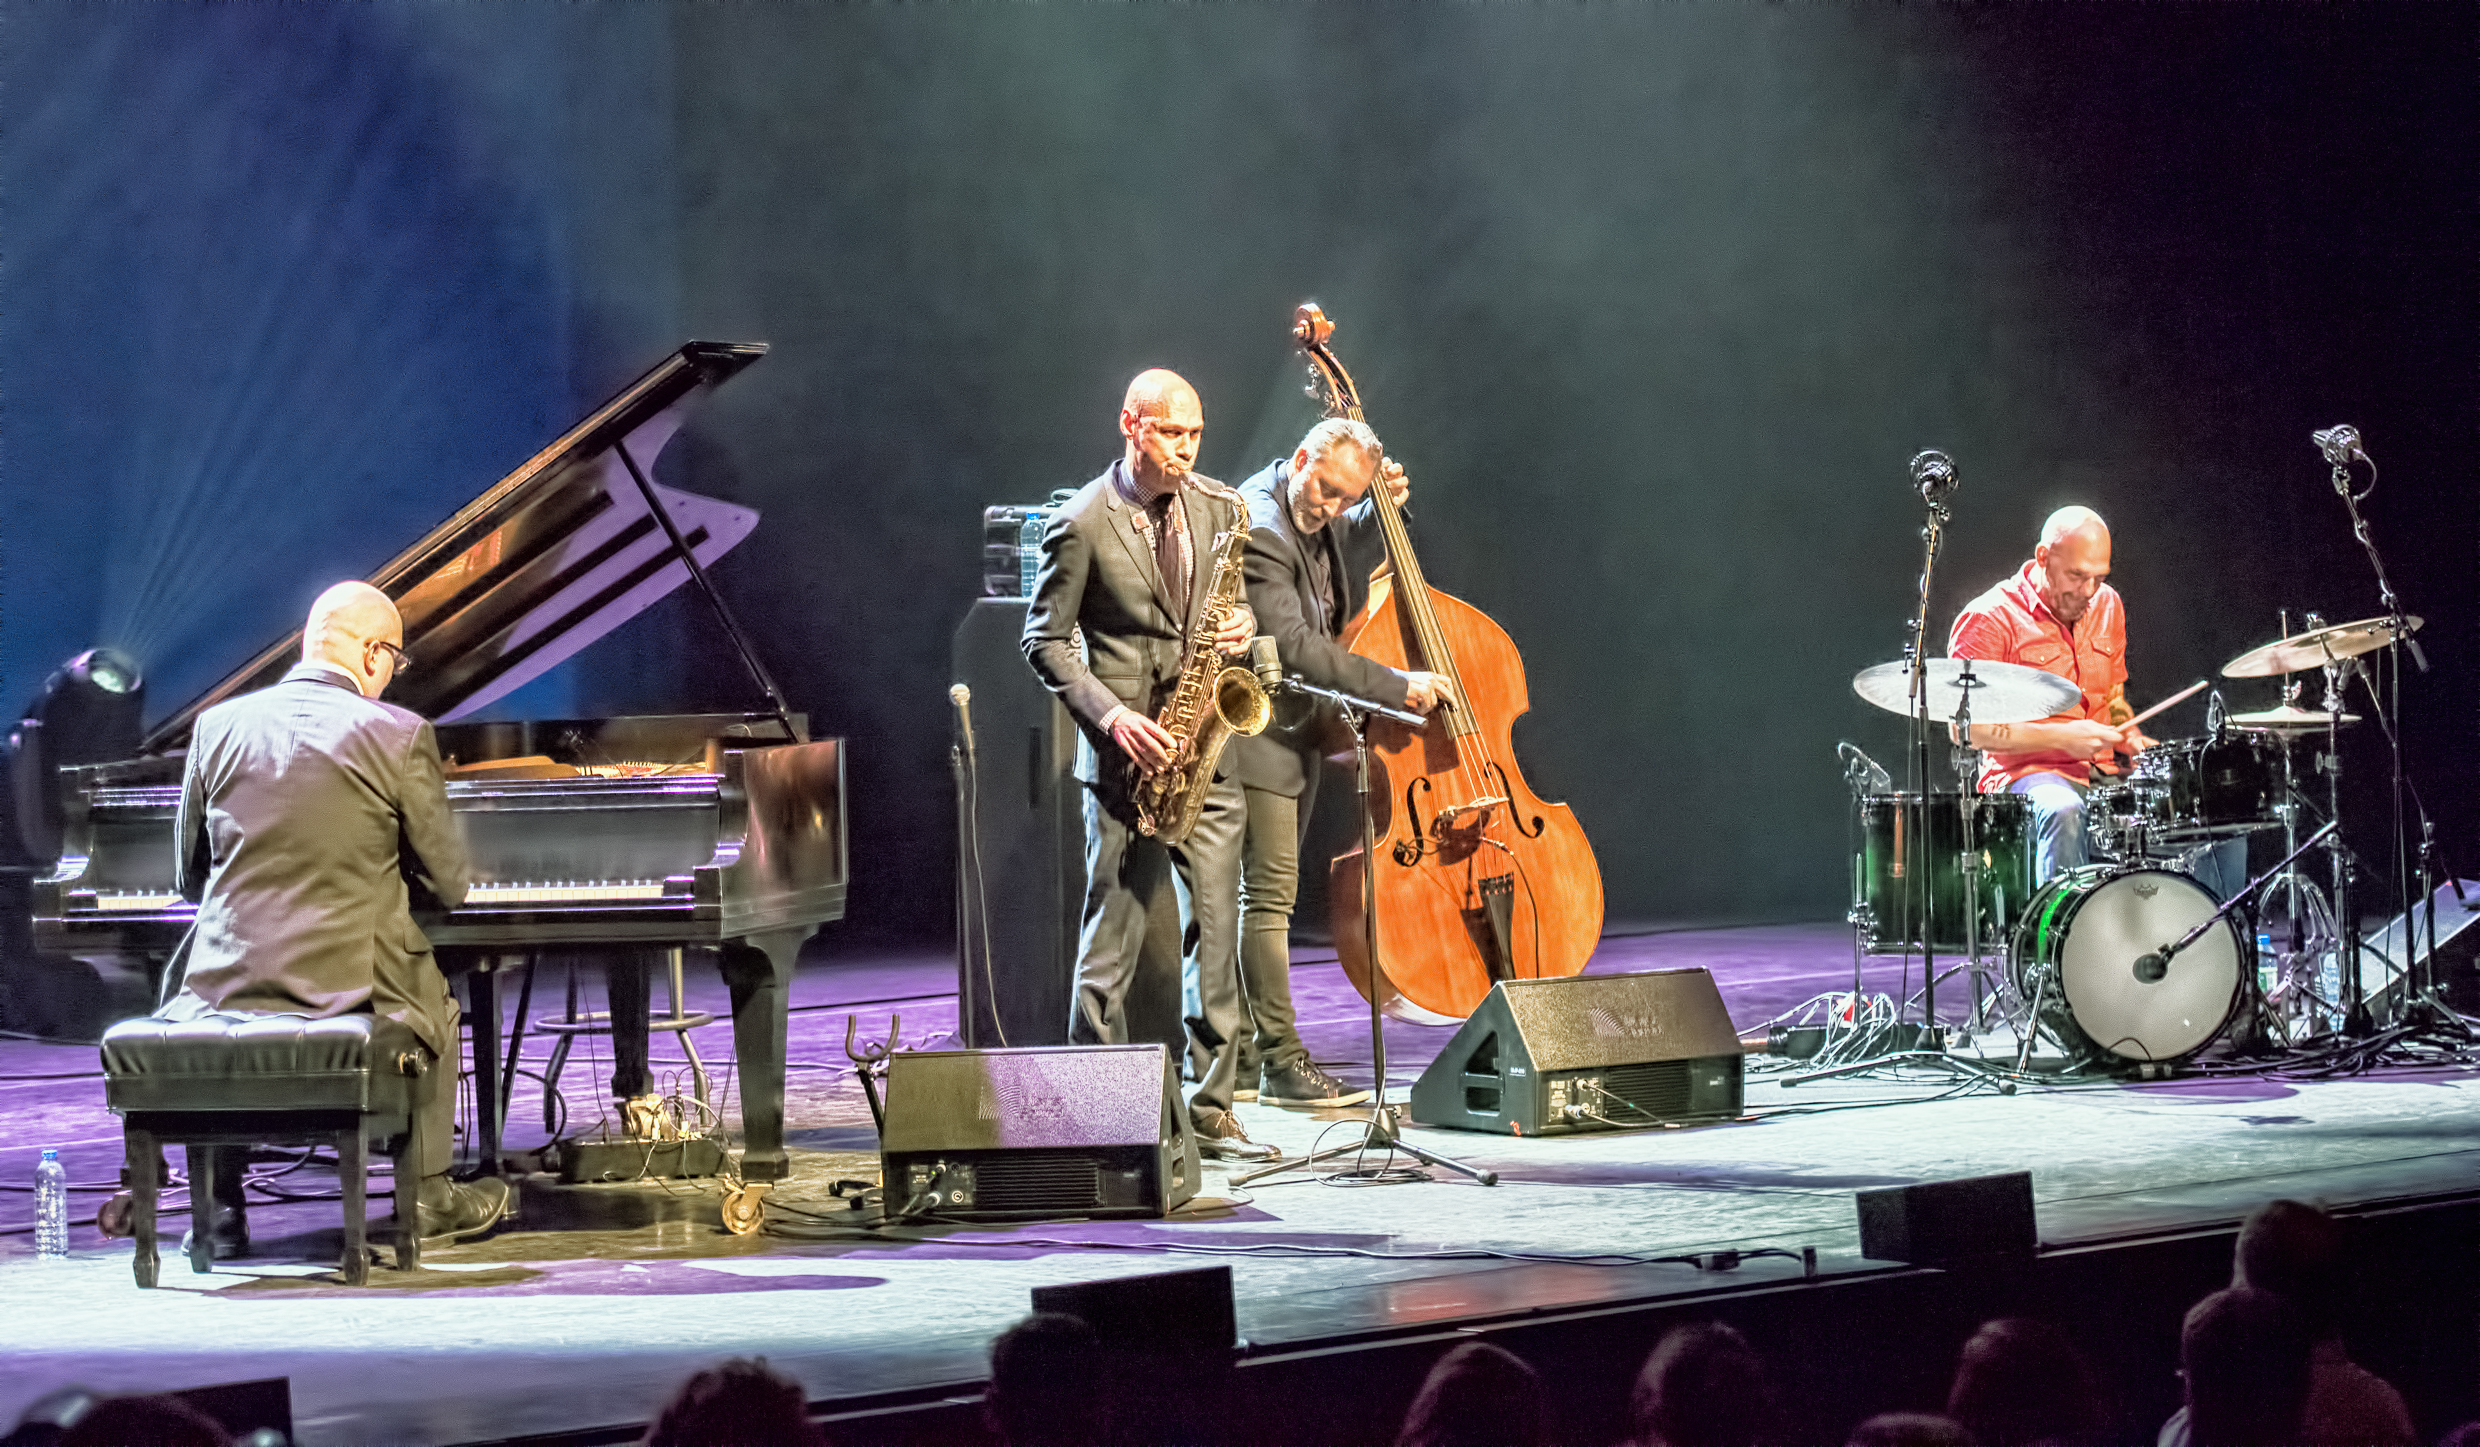 Ethan Iverson, Joshua Redman, Reid Anderson and Dave King with the Bad Plusat the Montreal International Jazz Festival 2015